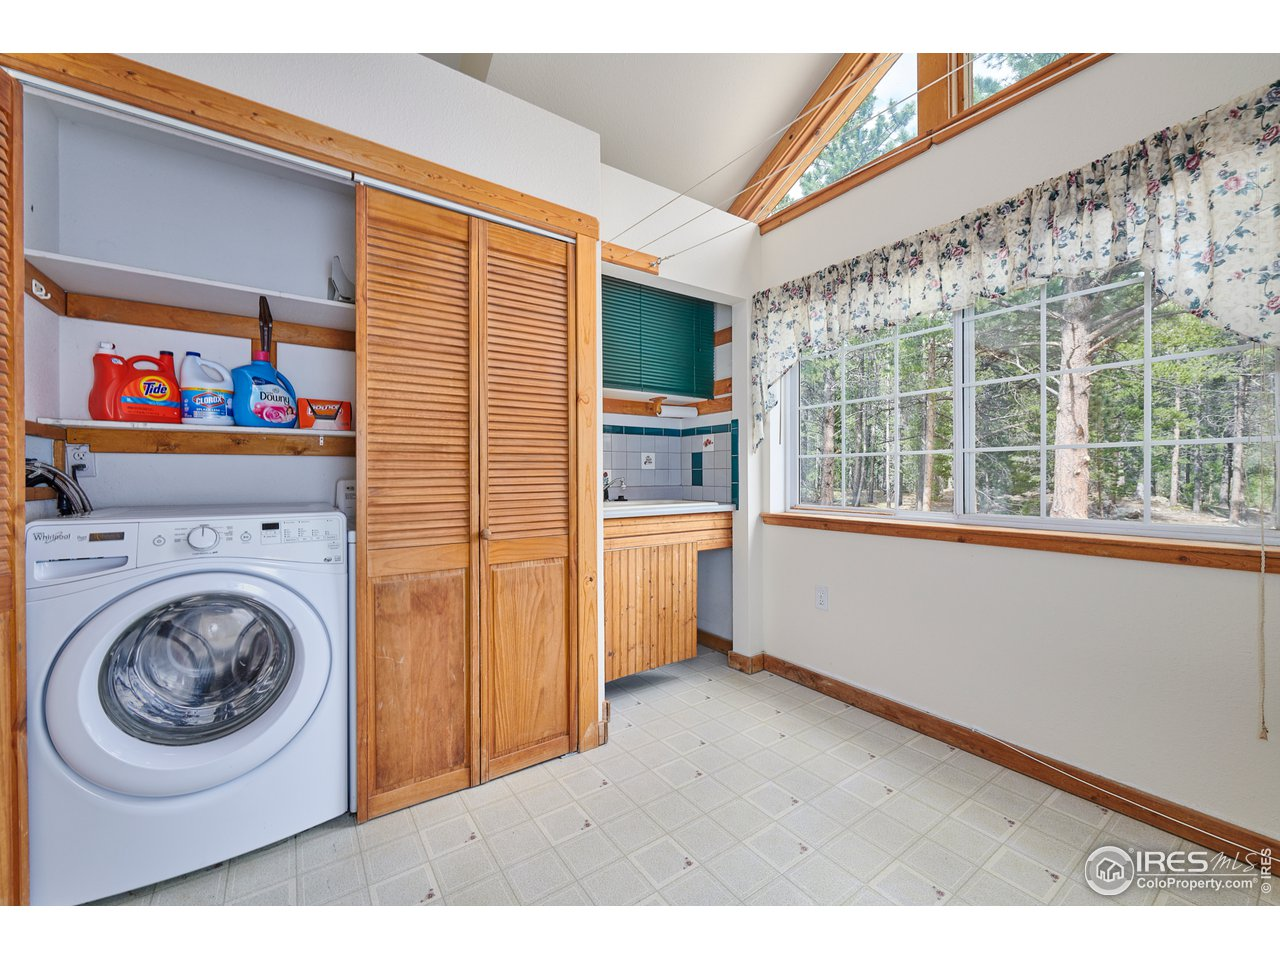 Large entry mudroom & laundry area